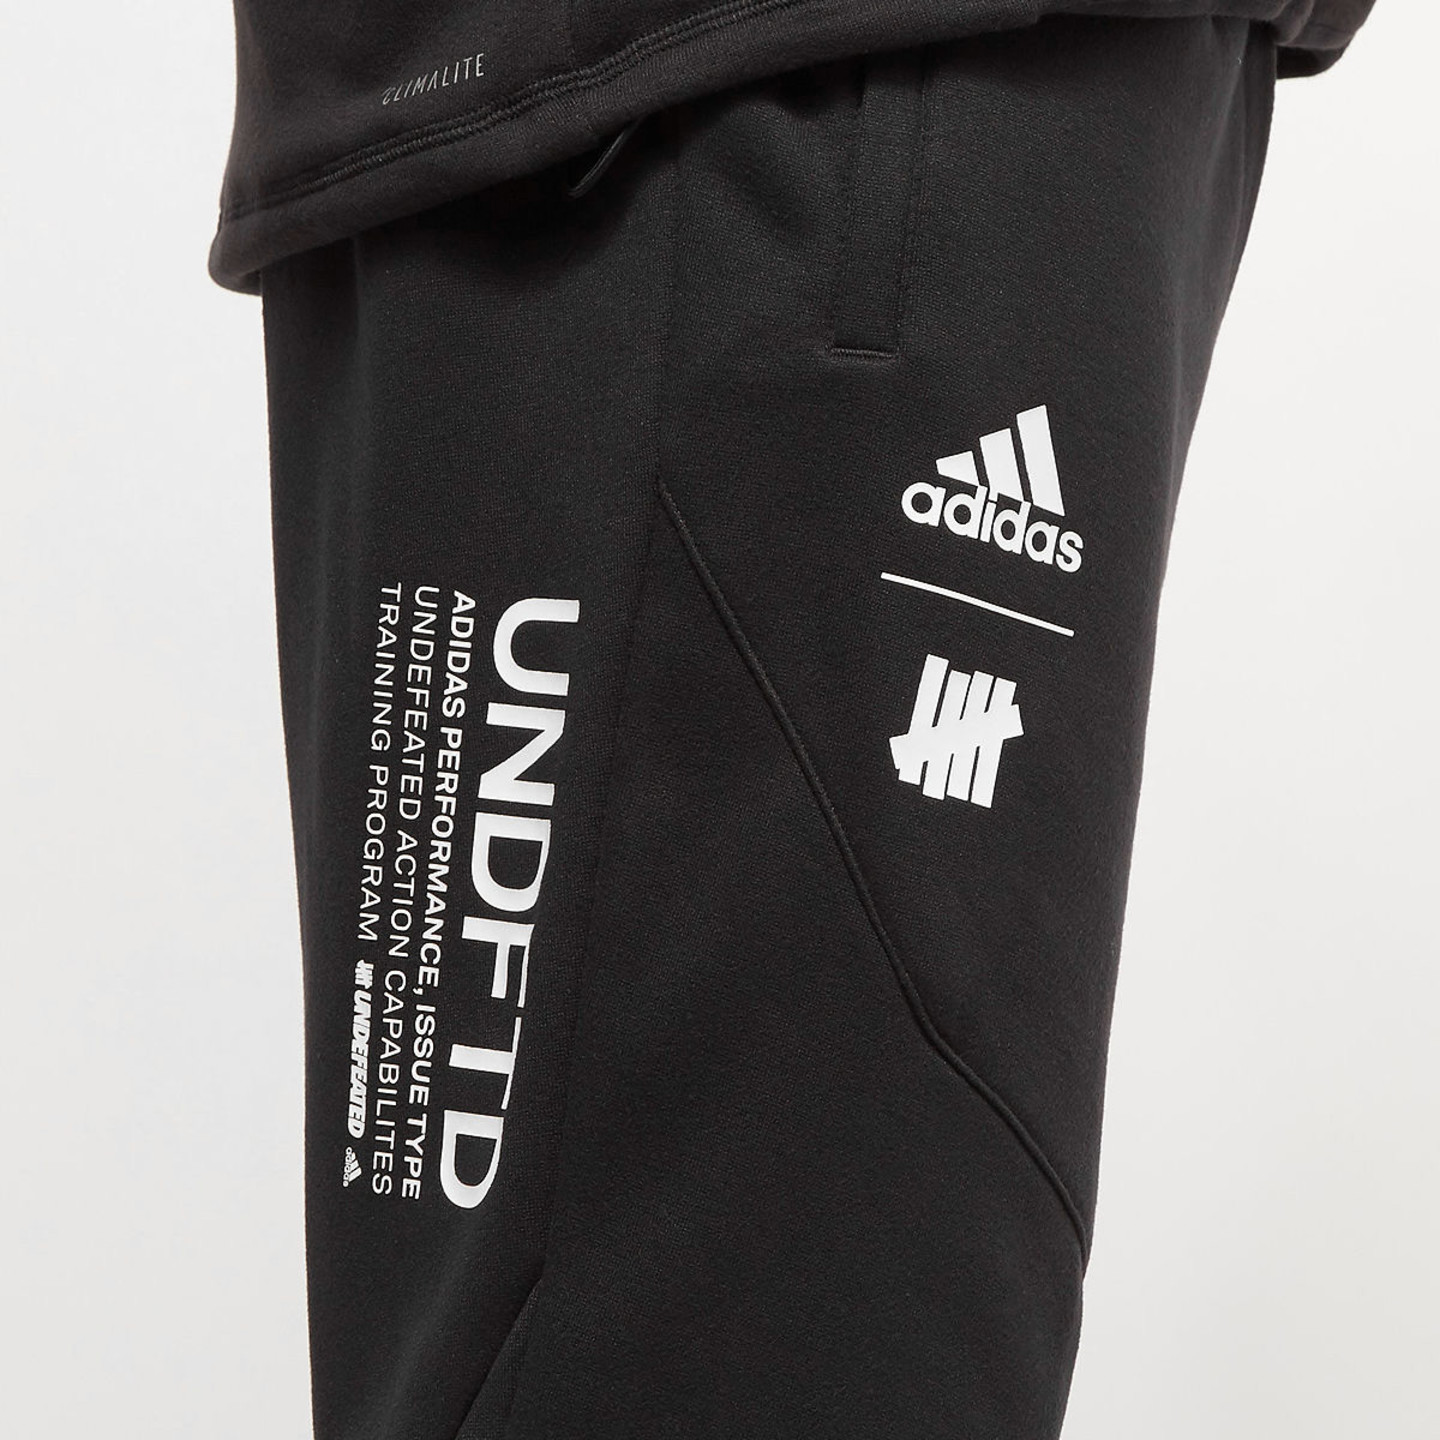 Adidas Sweat Pant 'UNDFTD' Core Black / White CZ5945